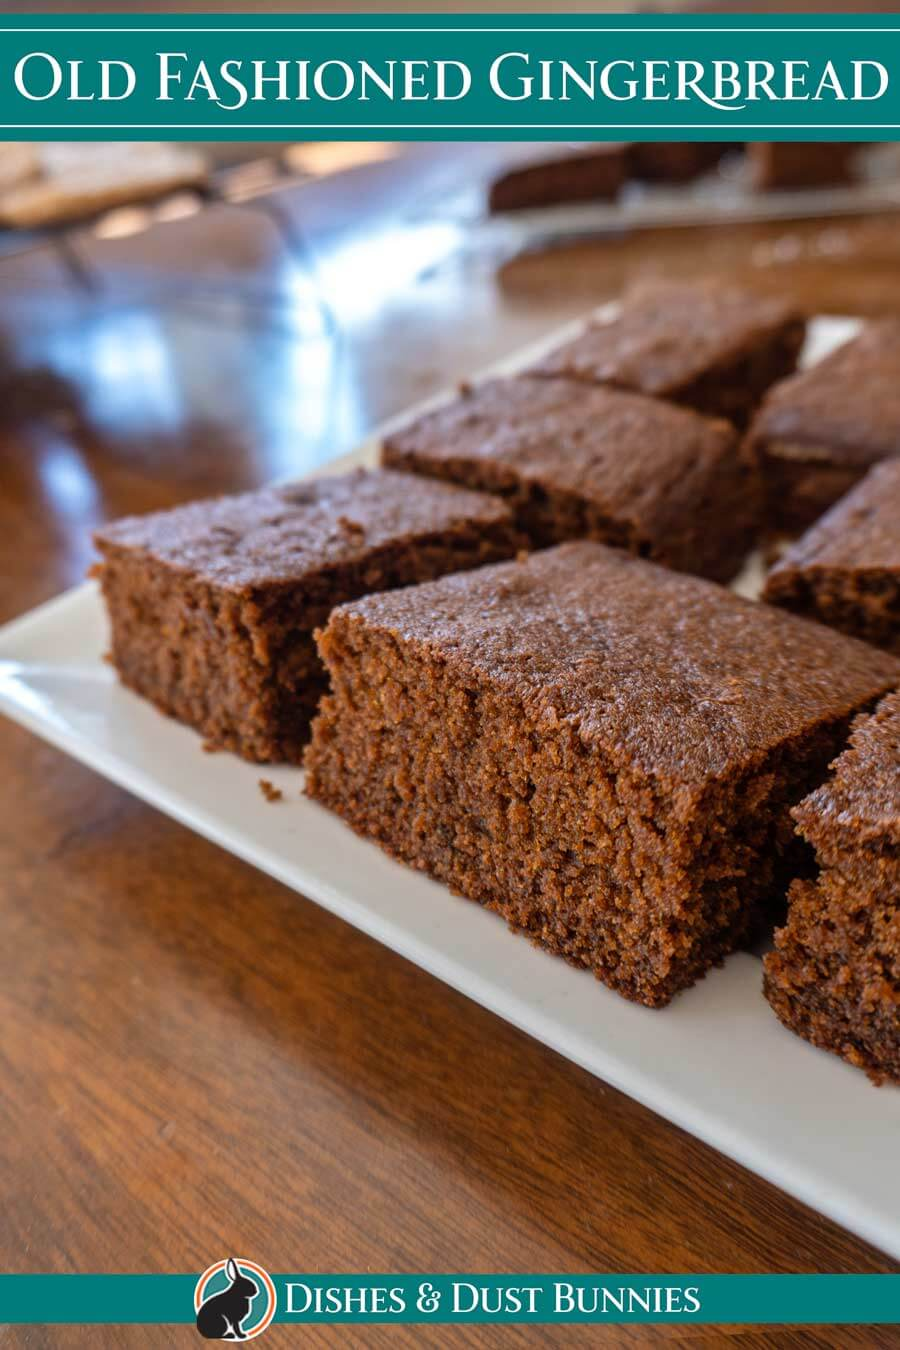 This classic old-fashioned gingerbread is a treasured old family recipe from my Great Grammie Alice. It's soft, moist and perfectly spiced with ginger, cinnamon, and molasses. This traditional gingerbread cake is absolutely delicious, plus quick and easy to make. Excellent for Christmas, Thanksgiving or any time of the year, you're going to fall in love with this recipe! ❤️